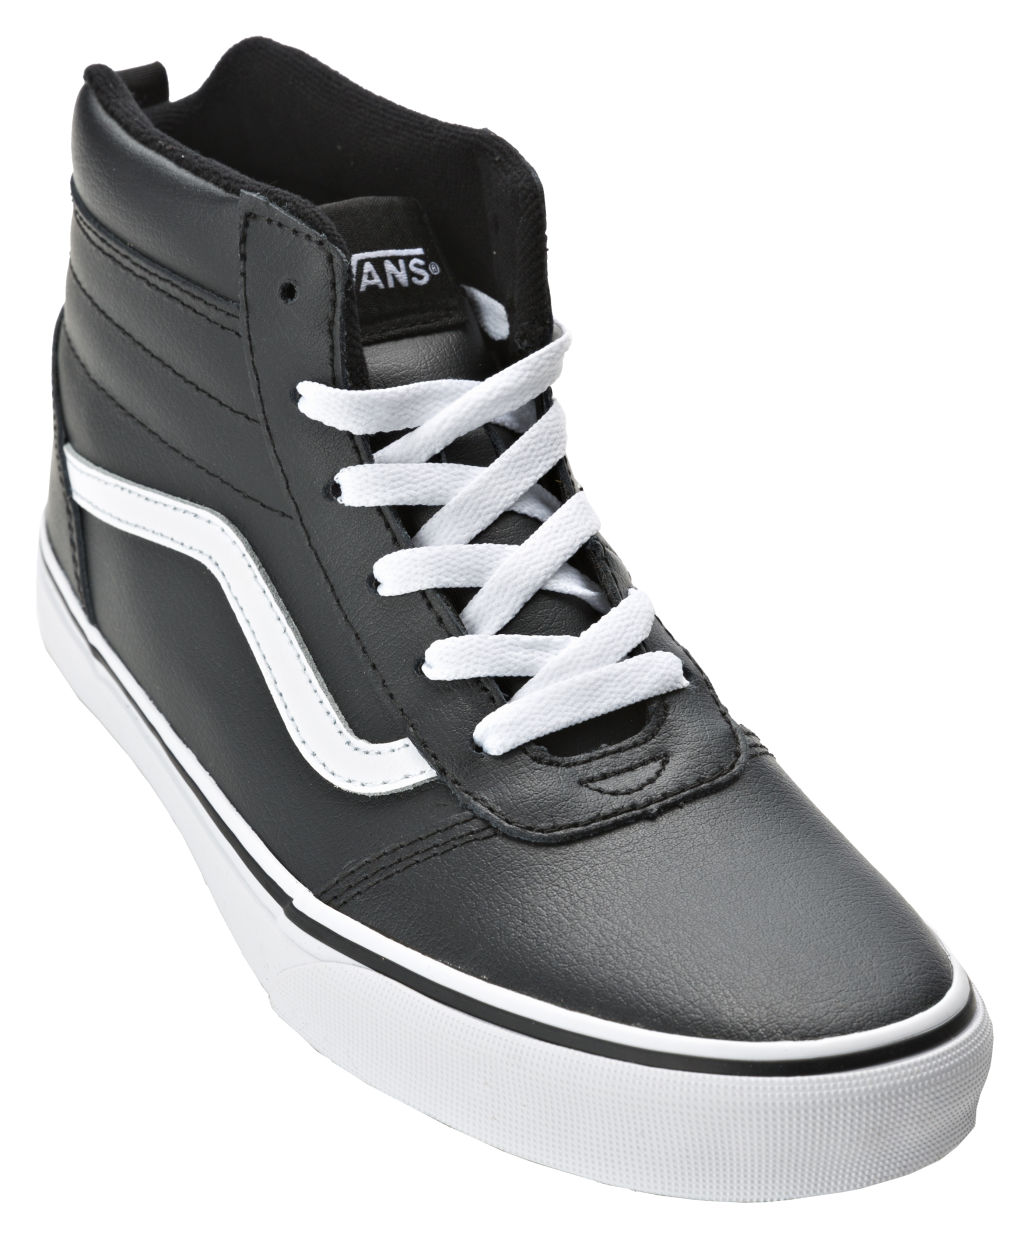 Vans Youth Ward Hi MTE